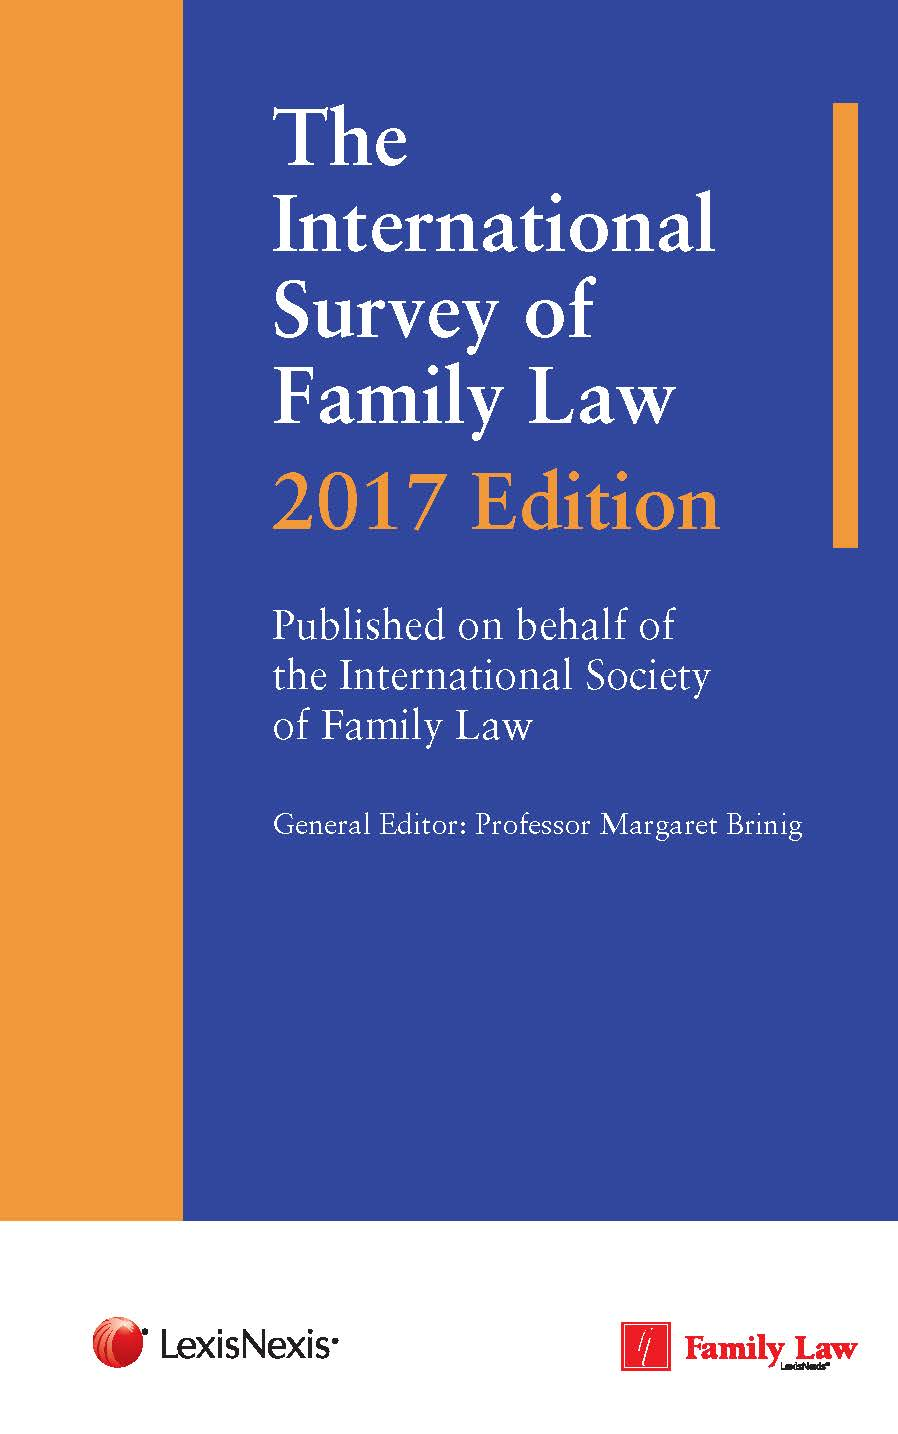 International Survey of Family Law: 2017 Edition, The